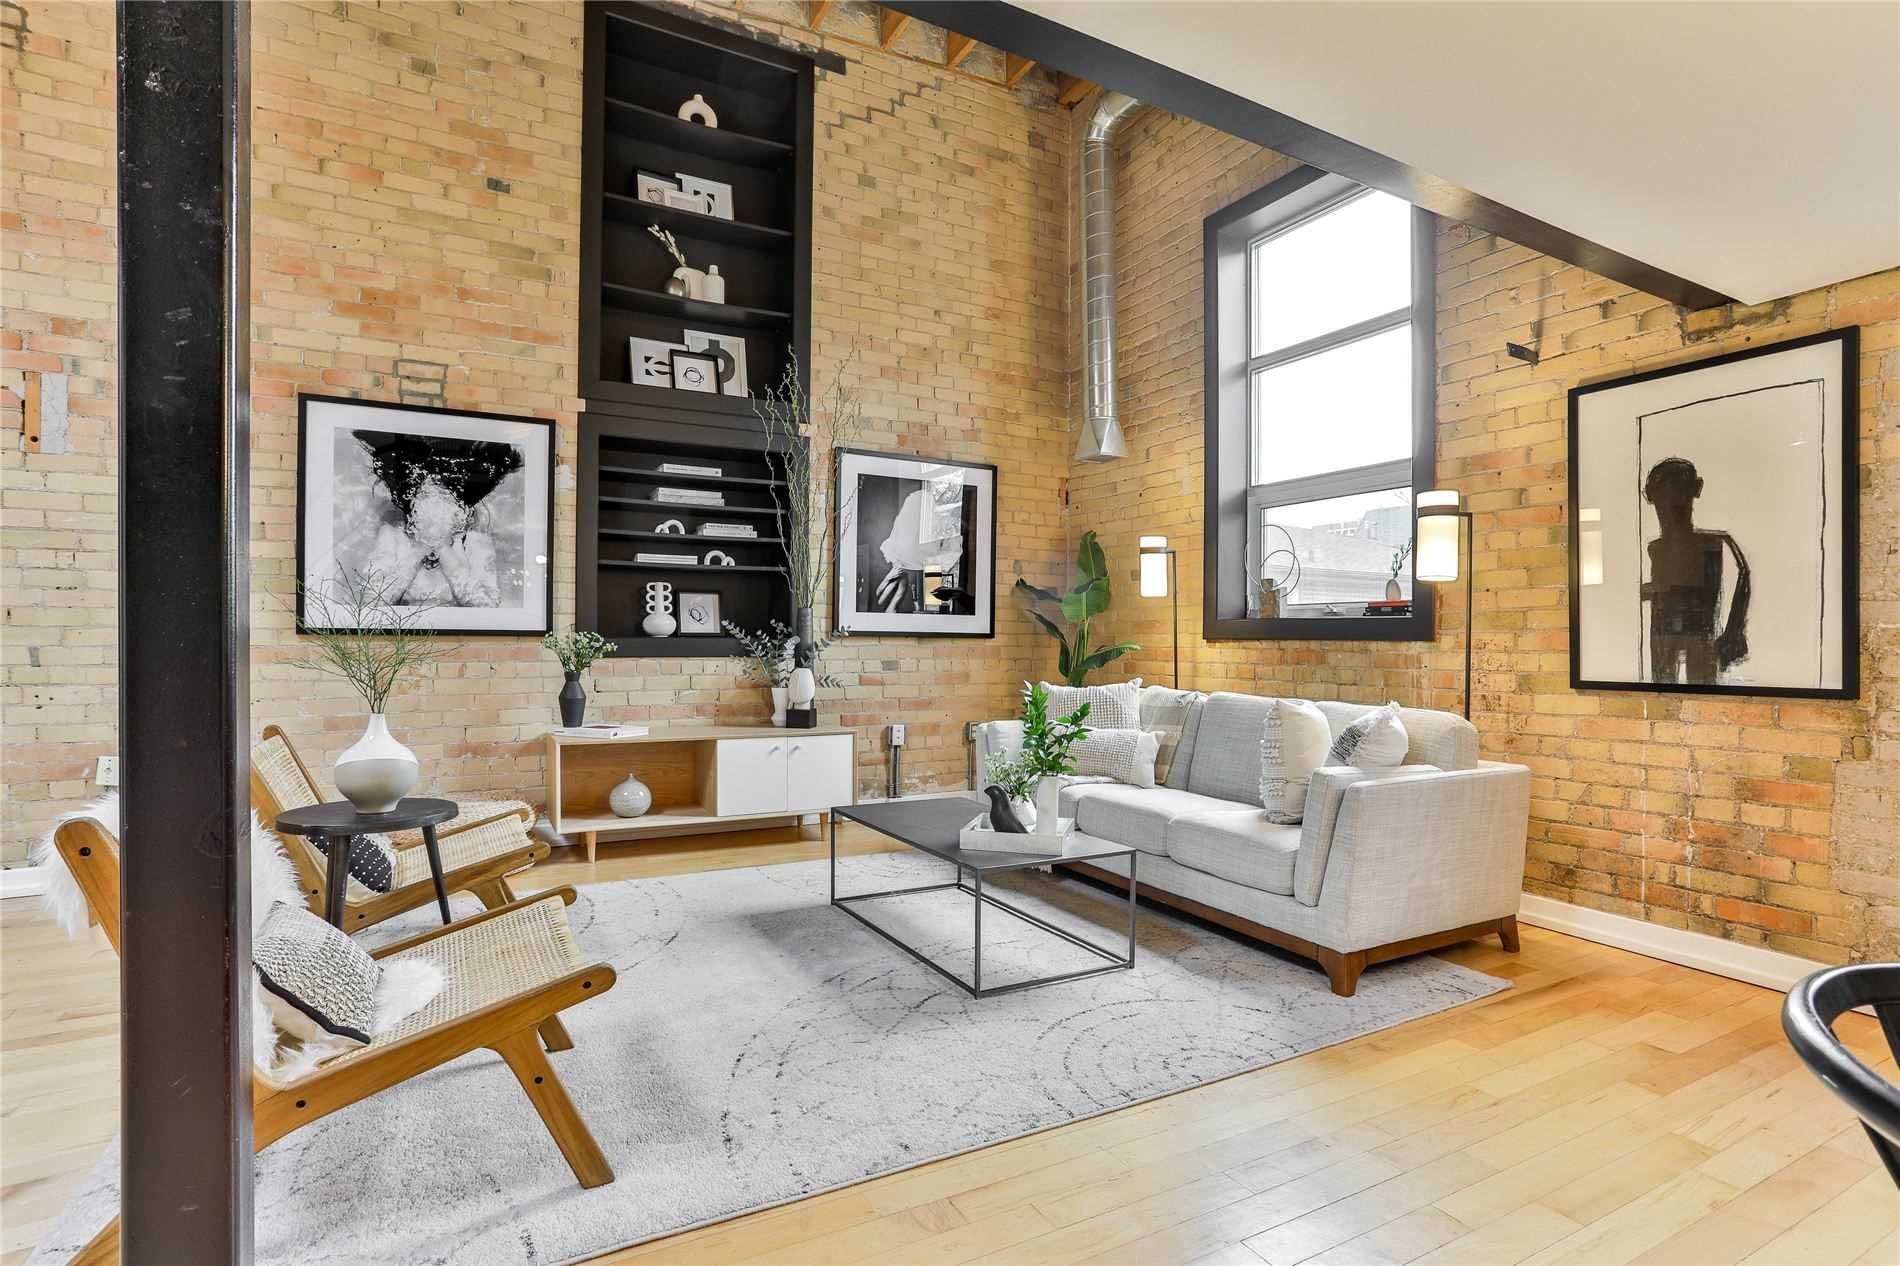 The Brock Lofts located at 31 Brock Ave 0